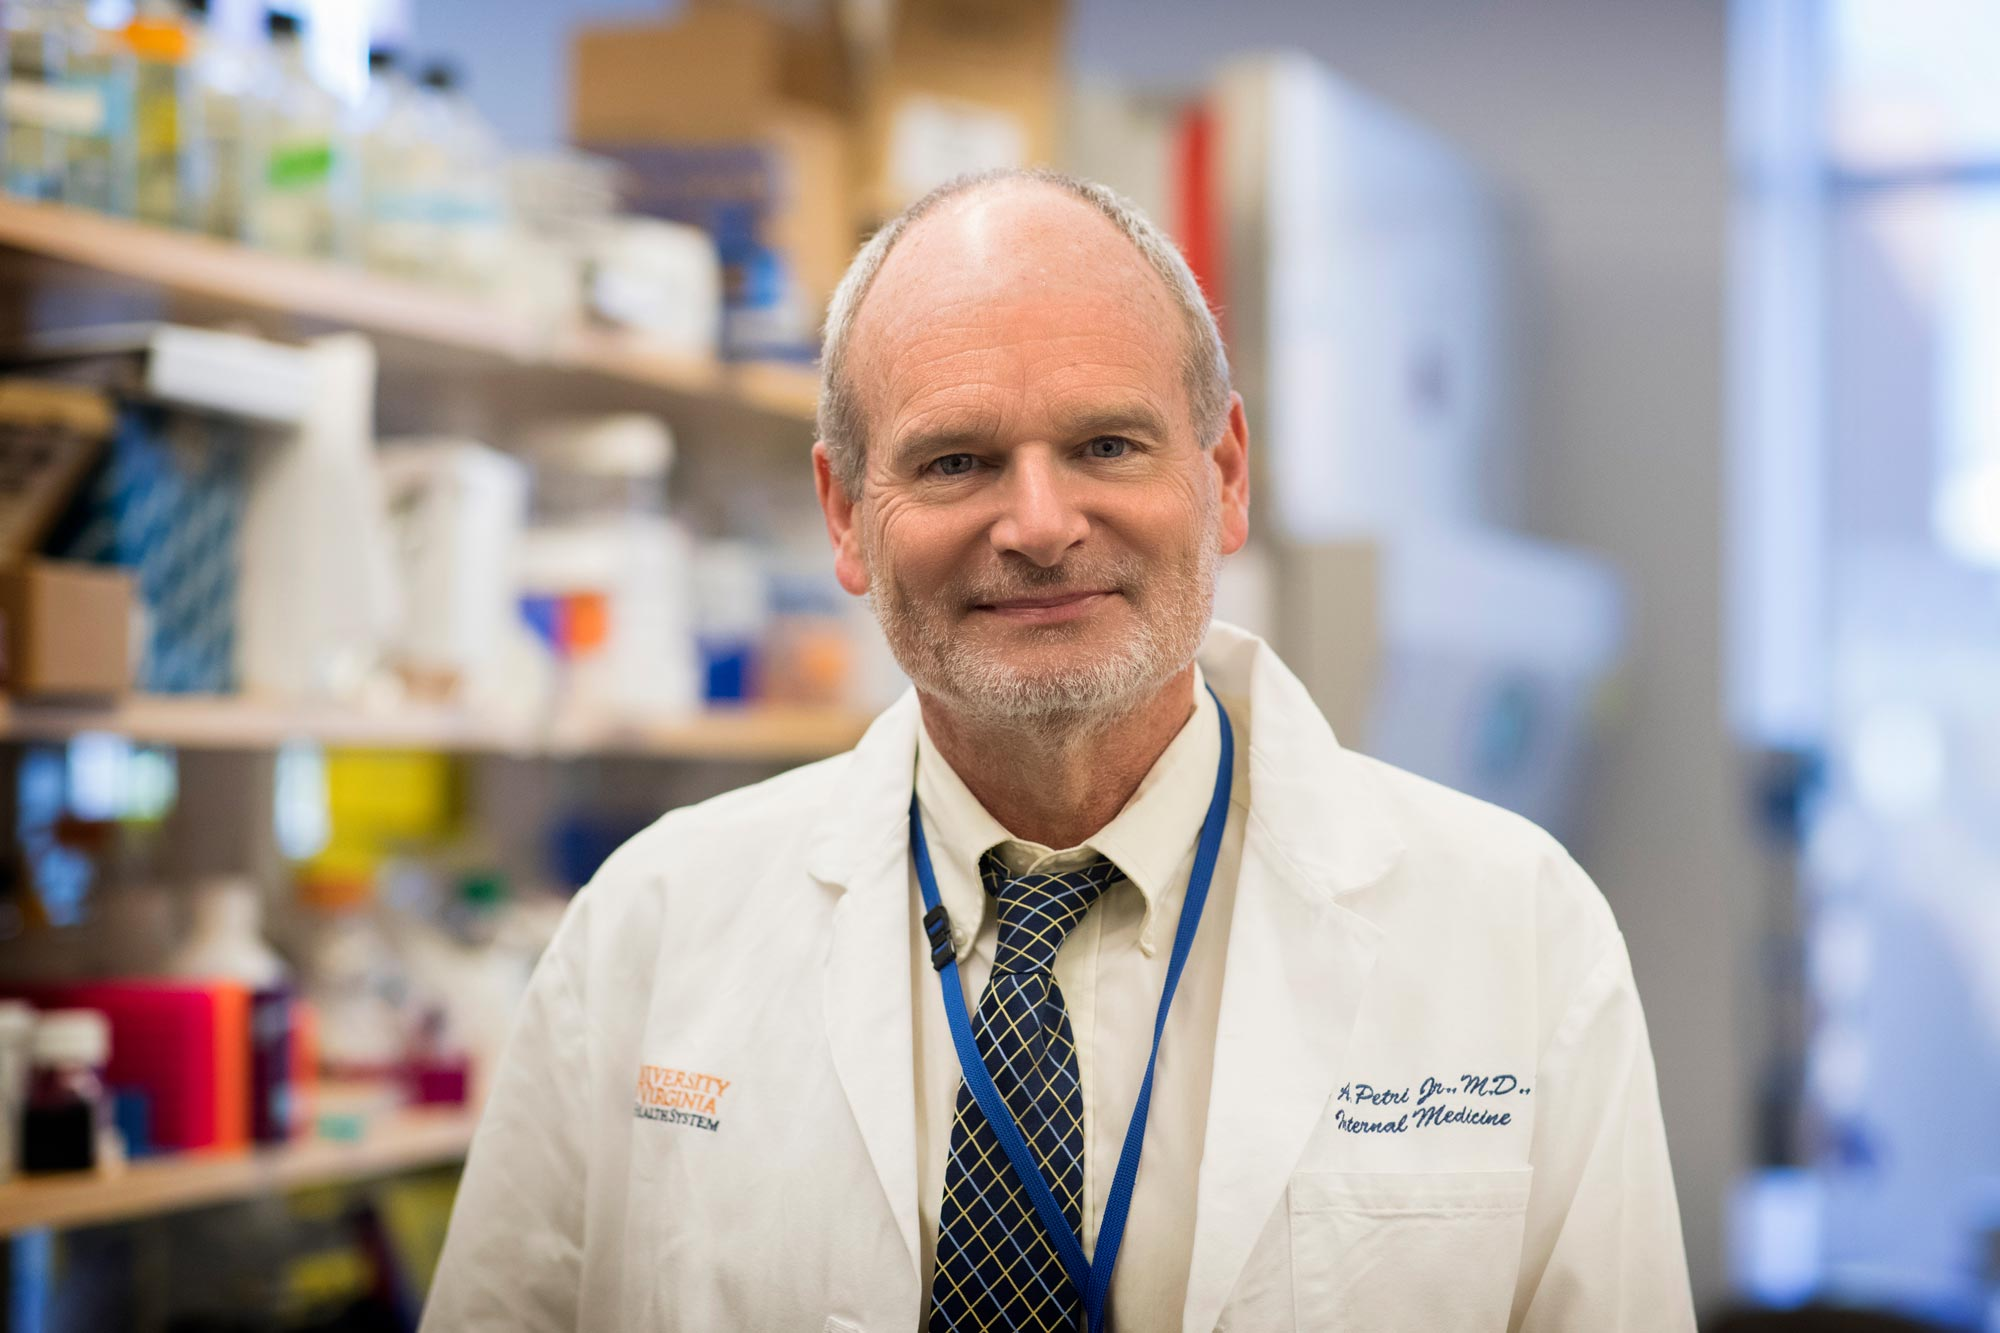 Dr. William Petri is the Wade Hampton Frost Professor of Medicine, vice chair for research in the Department of Medicine and a professor of infectious diseases and international health.